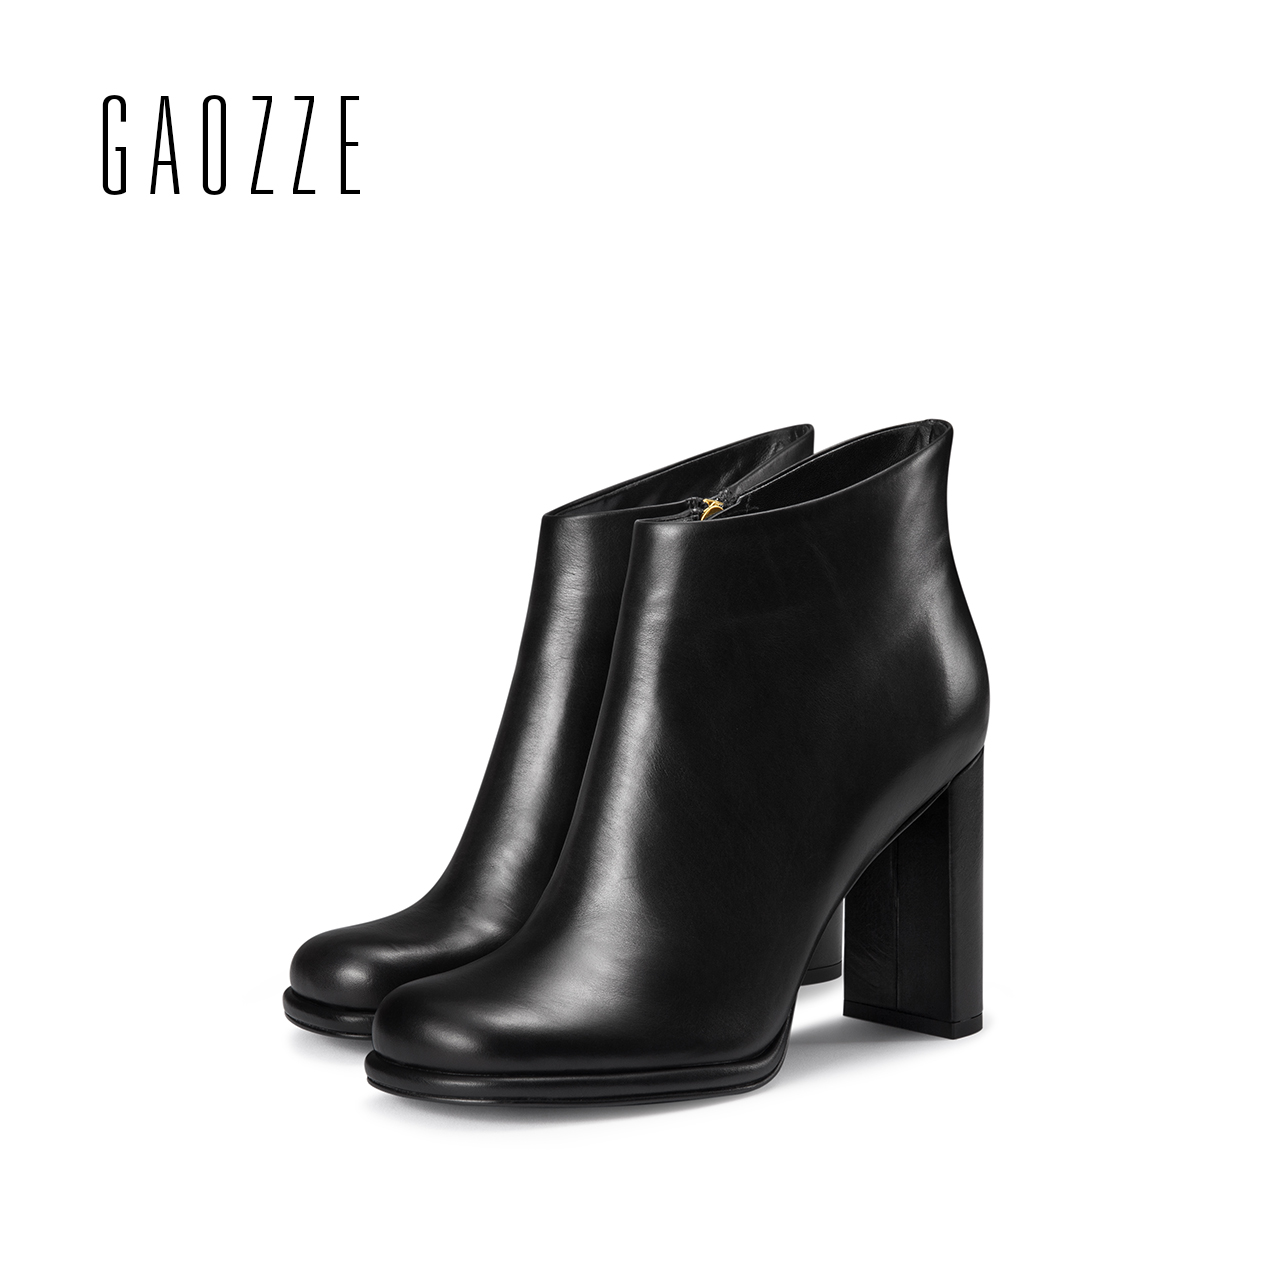 GAOZZE high heel women boots 2017 autumn new round head thick heel female boots side zipper ankle boots for women black leather цена